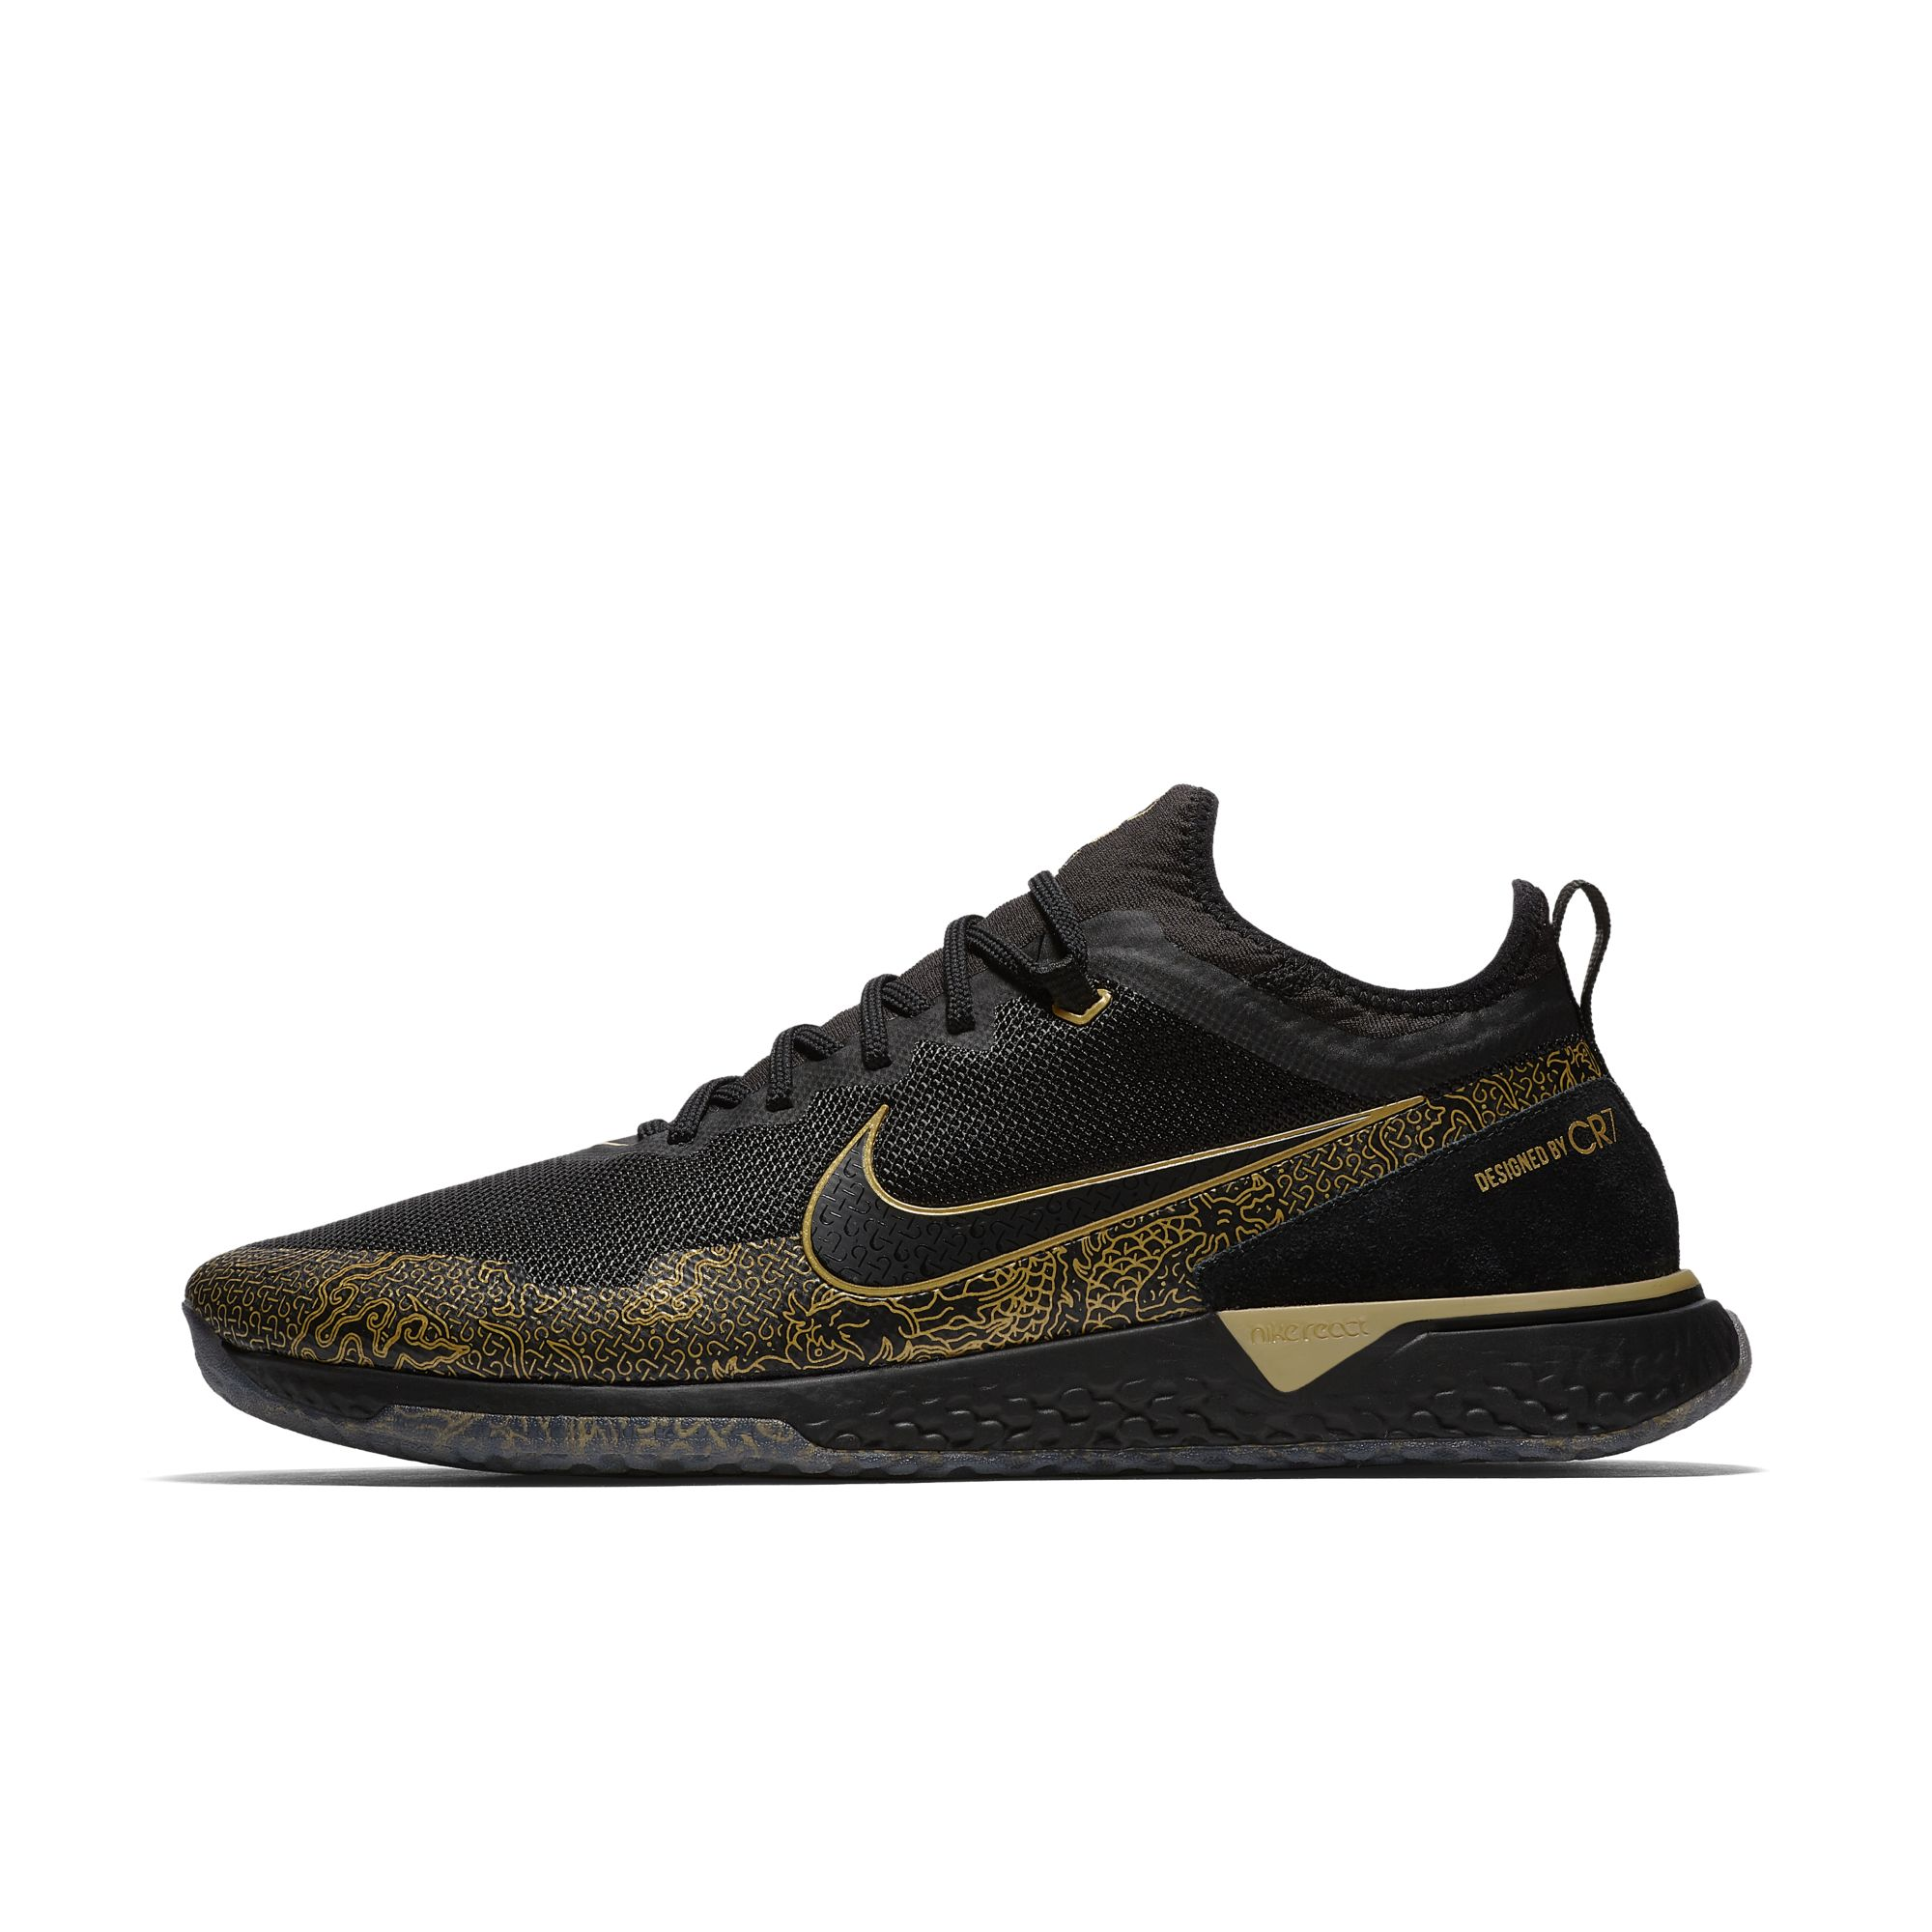 NIKE FC CR7 BLACK:METALLIC GOLD:BLACK 4